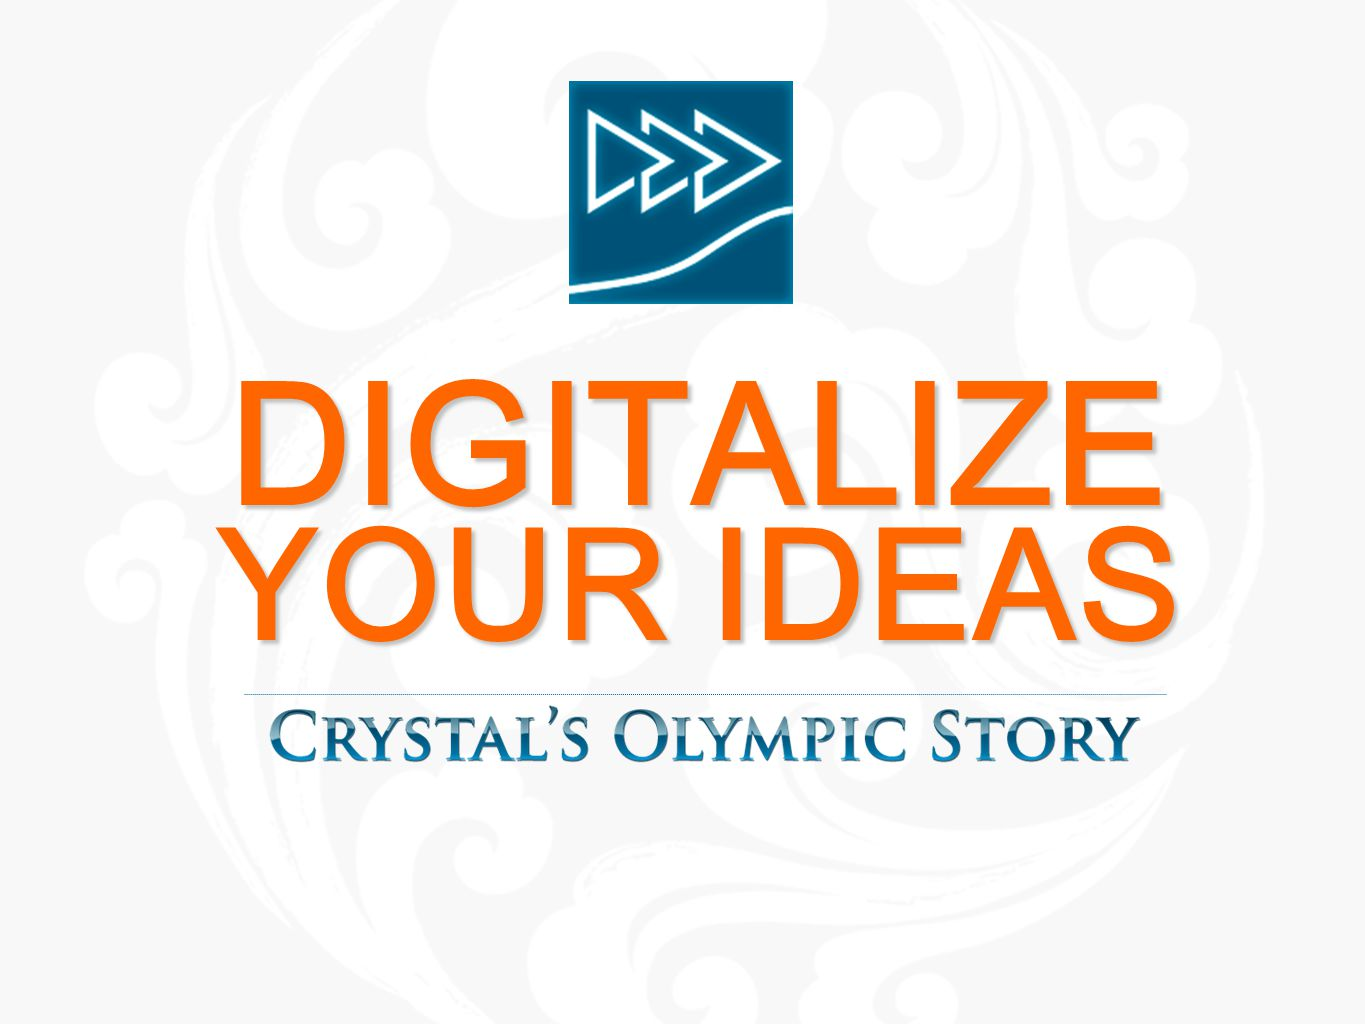 All Rounded Olympics Experience CrystalCG's Olympic Story 2 With 800 employees and a database of Olympics related research, knowledge and digital assets accumulated over 8 years, 108 Olympics related project covering 27 critical categories, we are in a position to take Olympics related content to a higher plane.